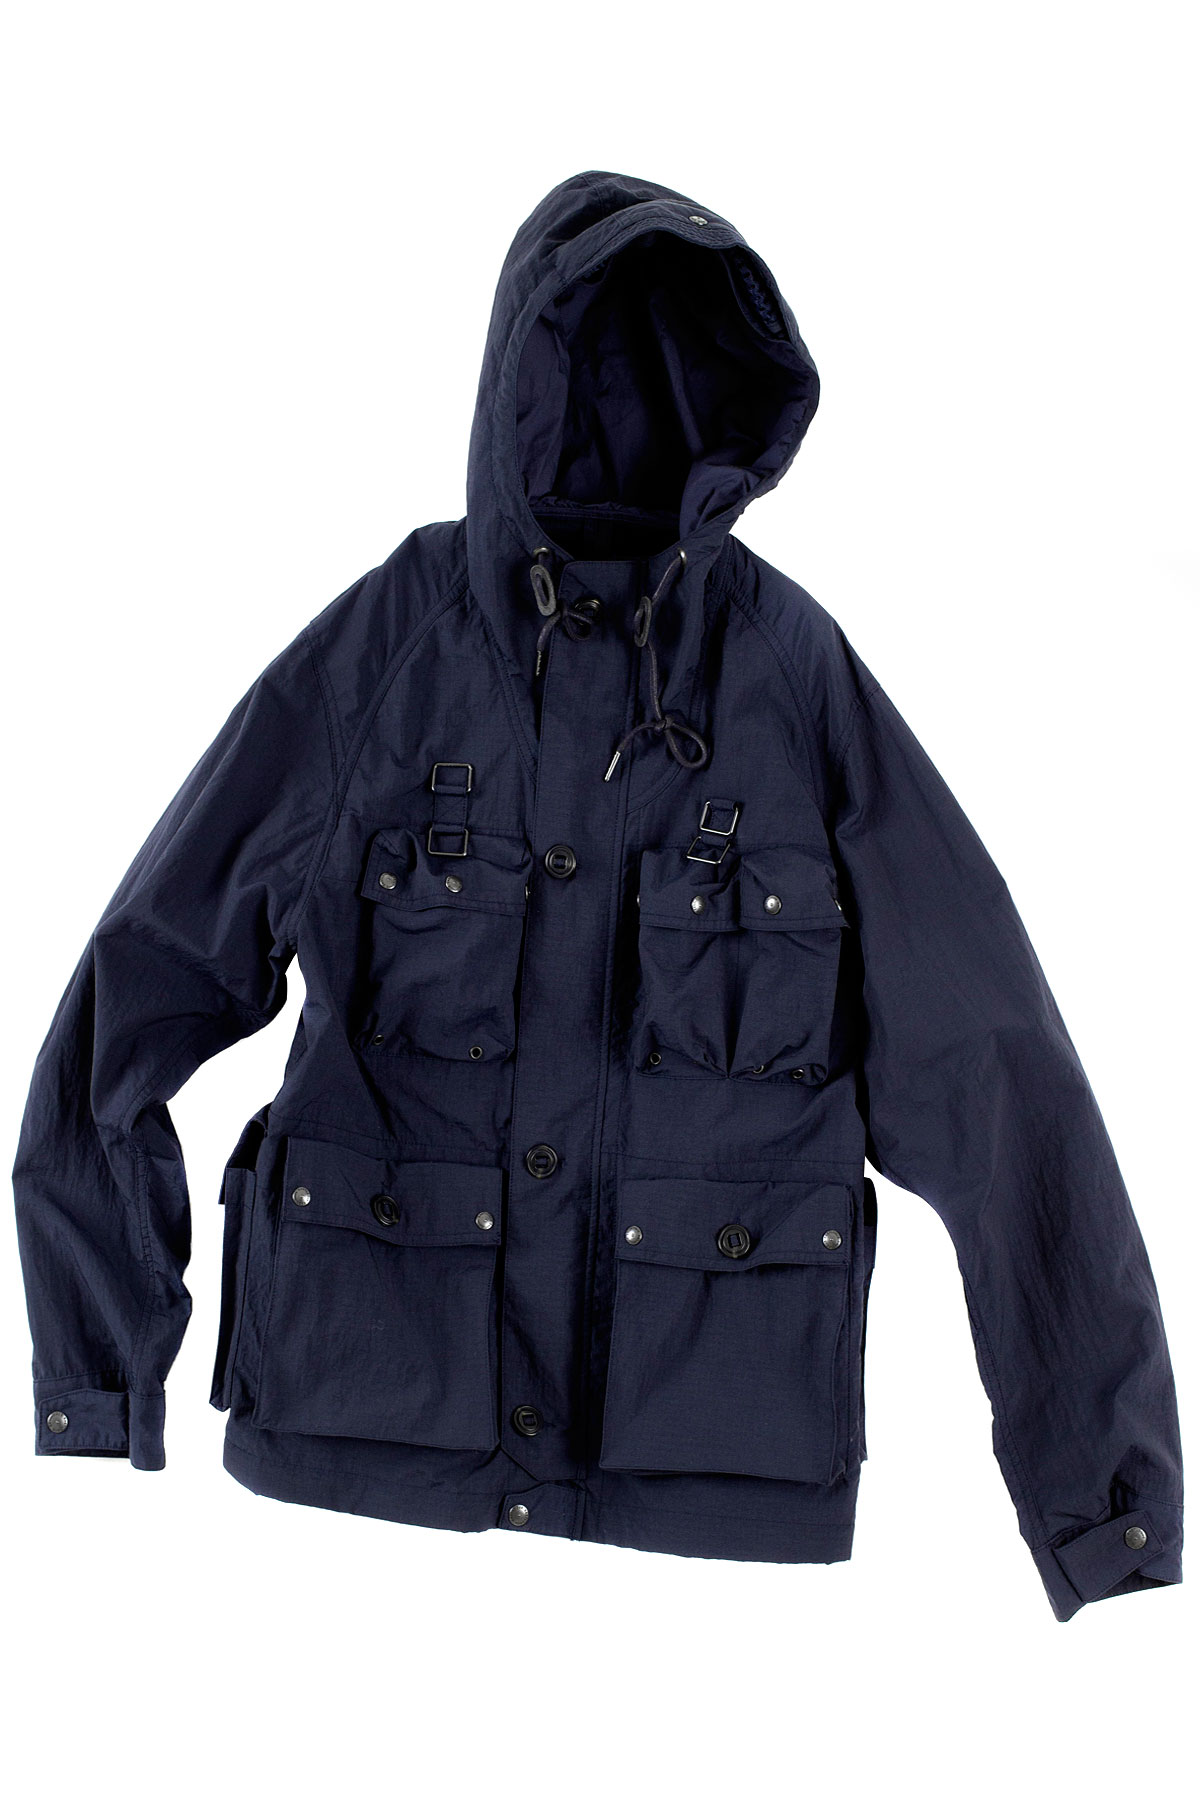 Eastlogue : M70 Parka (Navy)